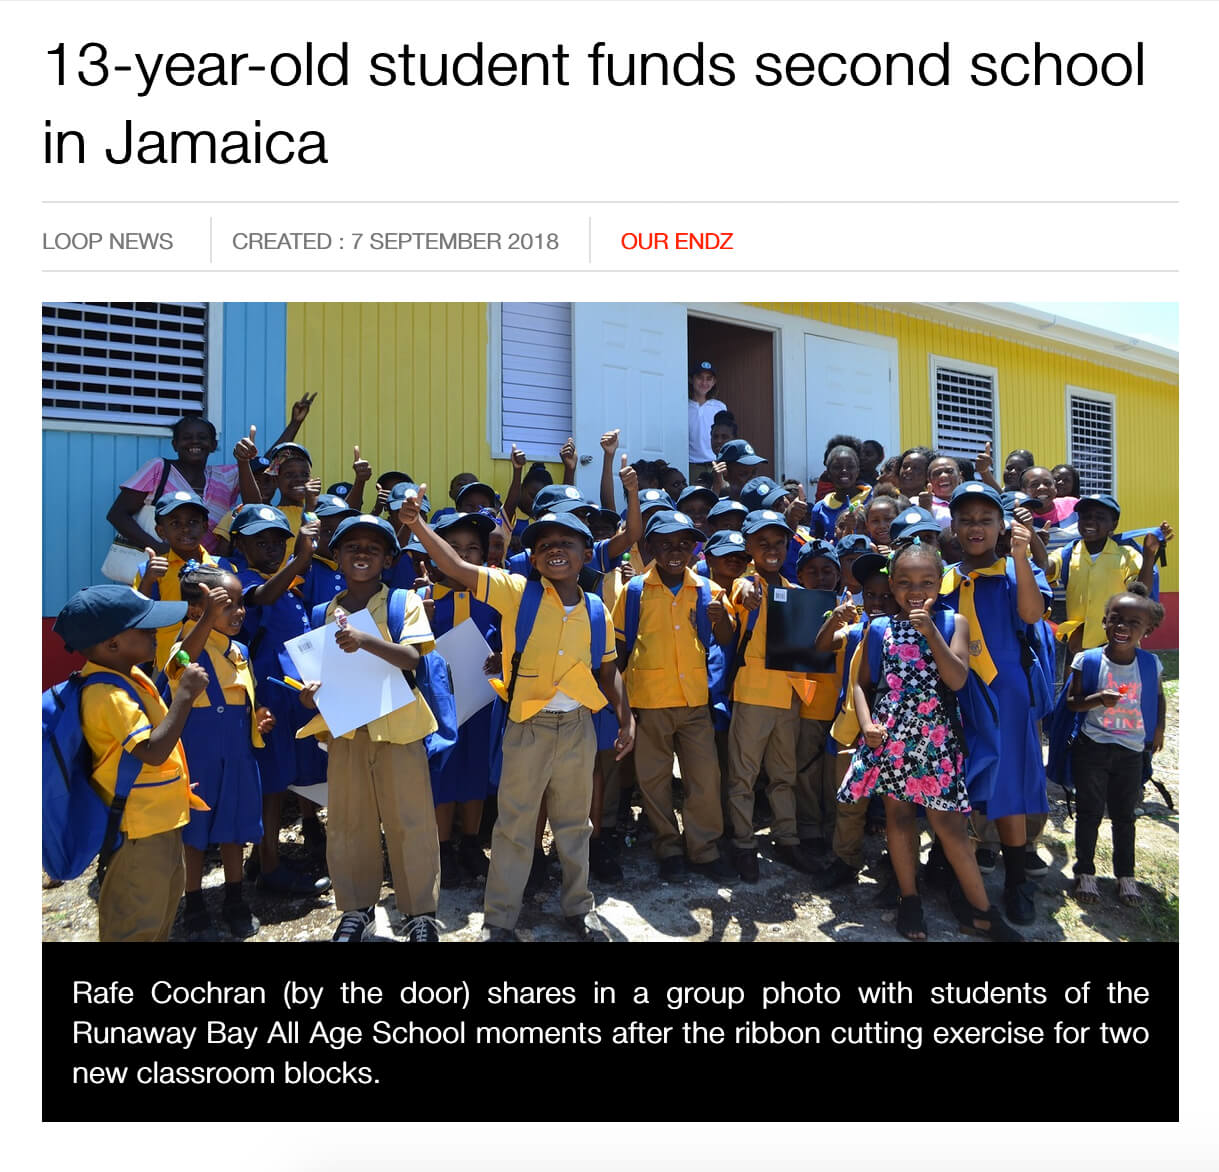 Young Golfer Ray Cochran Builds Schools in Jamaica